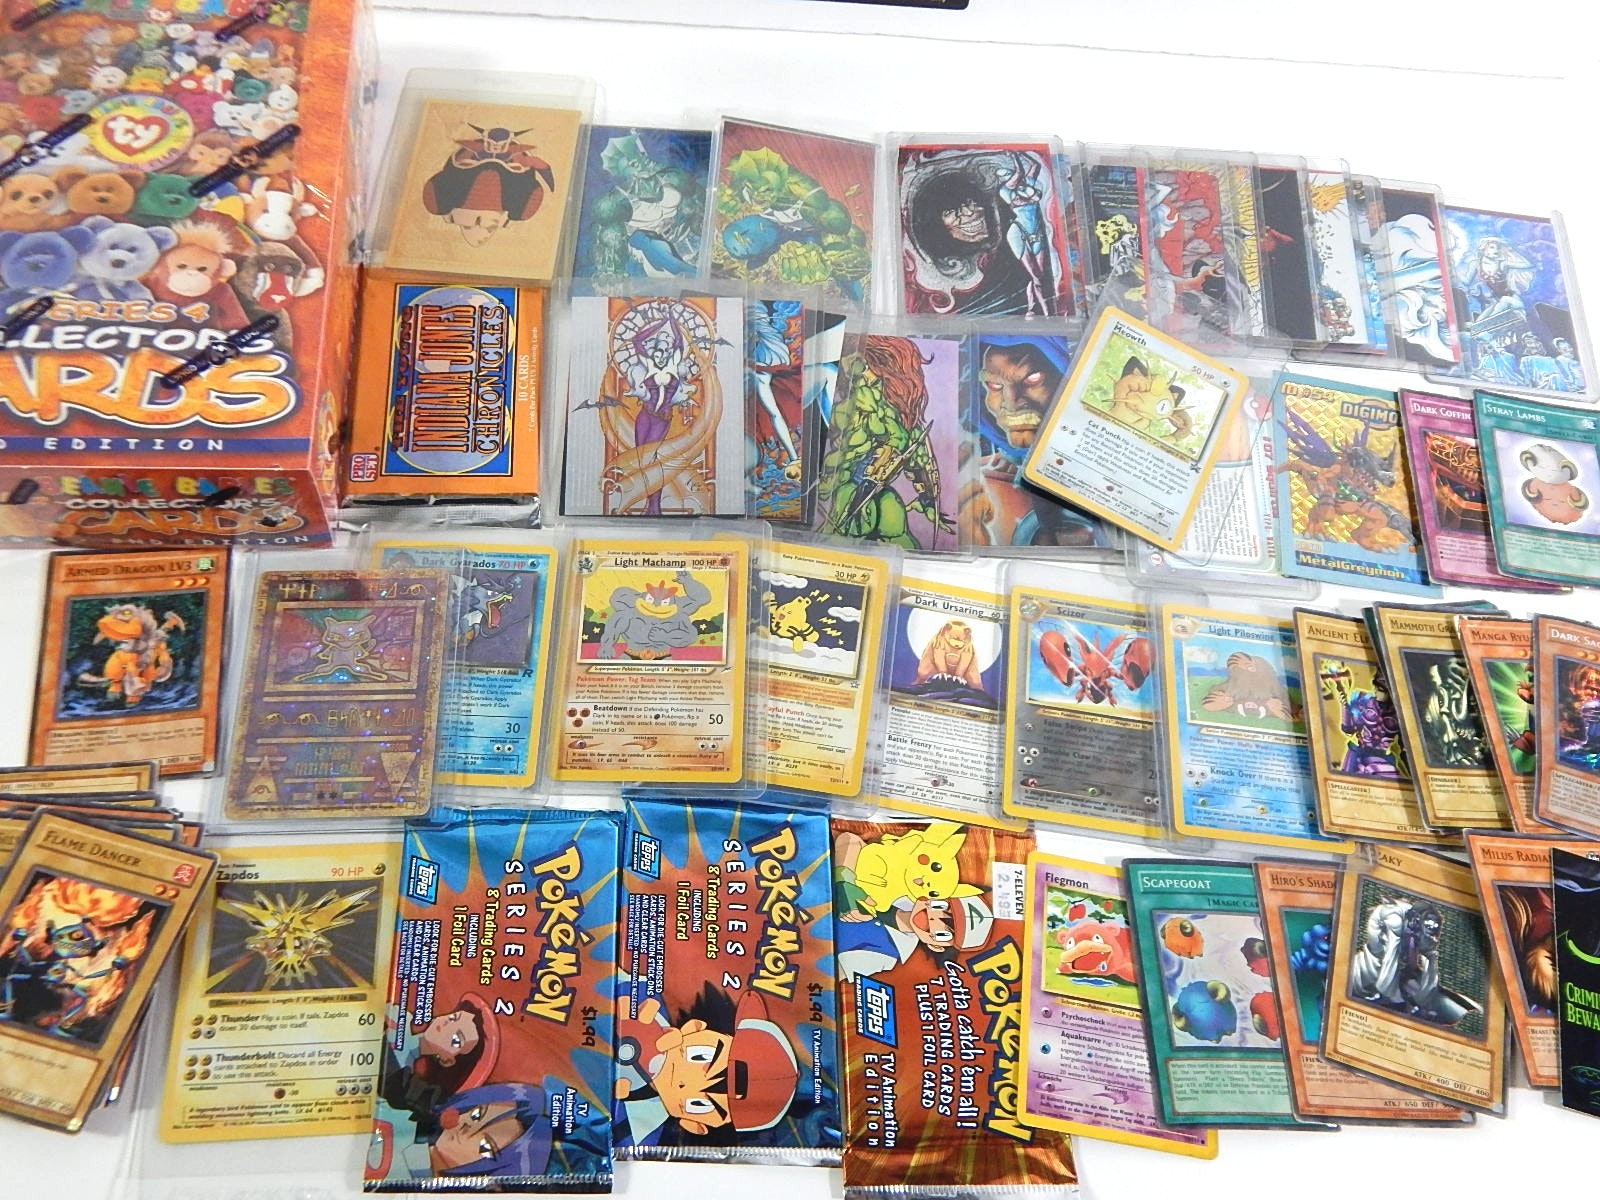 Non-Sports Card Collection with Pokemon, Yu-Gi-Oh!, Dragon Ballz, Lady Death